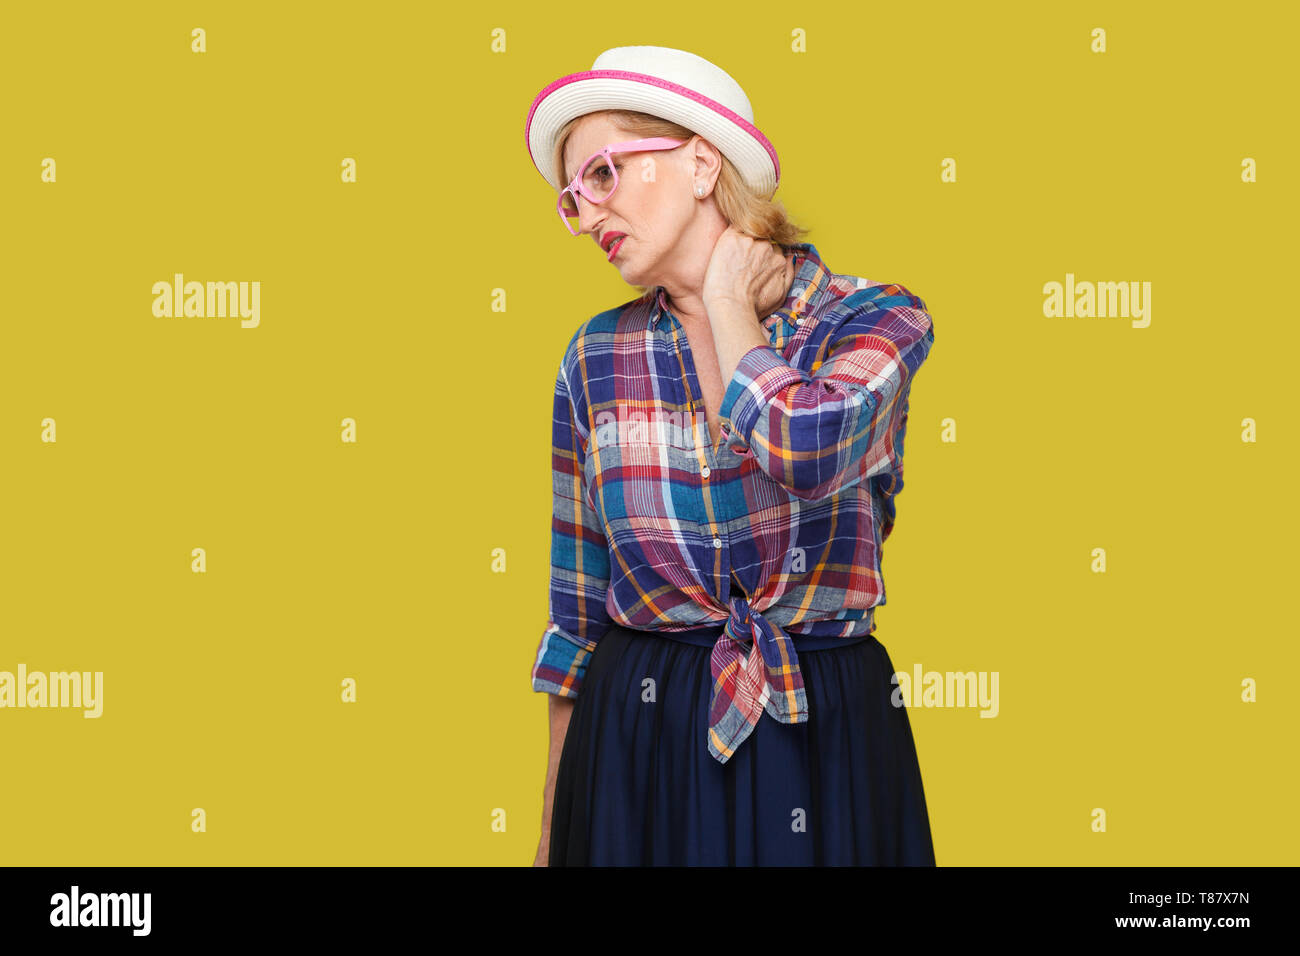 Neck pain. Portrait of sick modern stylish mature woman in casual style with hat and eyeglasses standing and holding her painful neck and feeling bad. - Stock Image